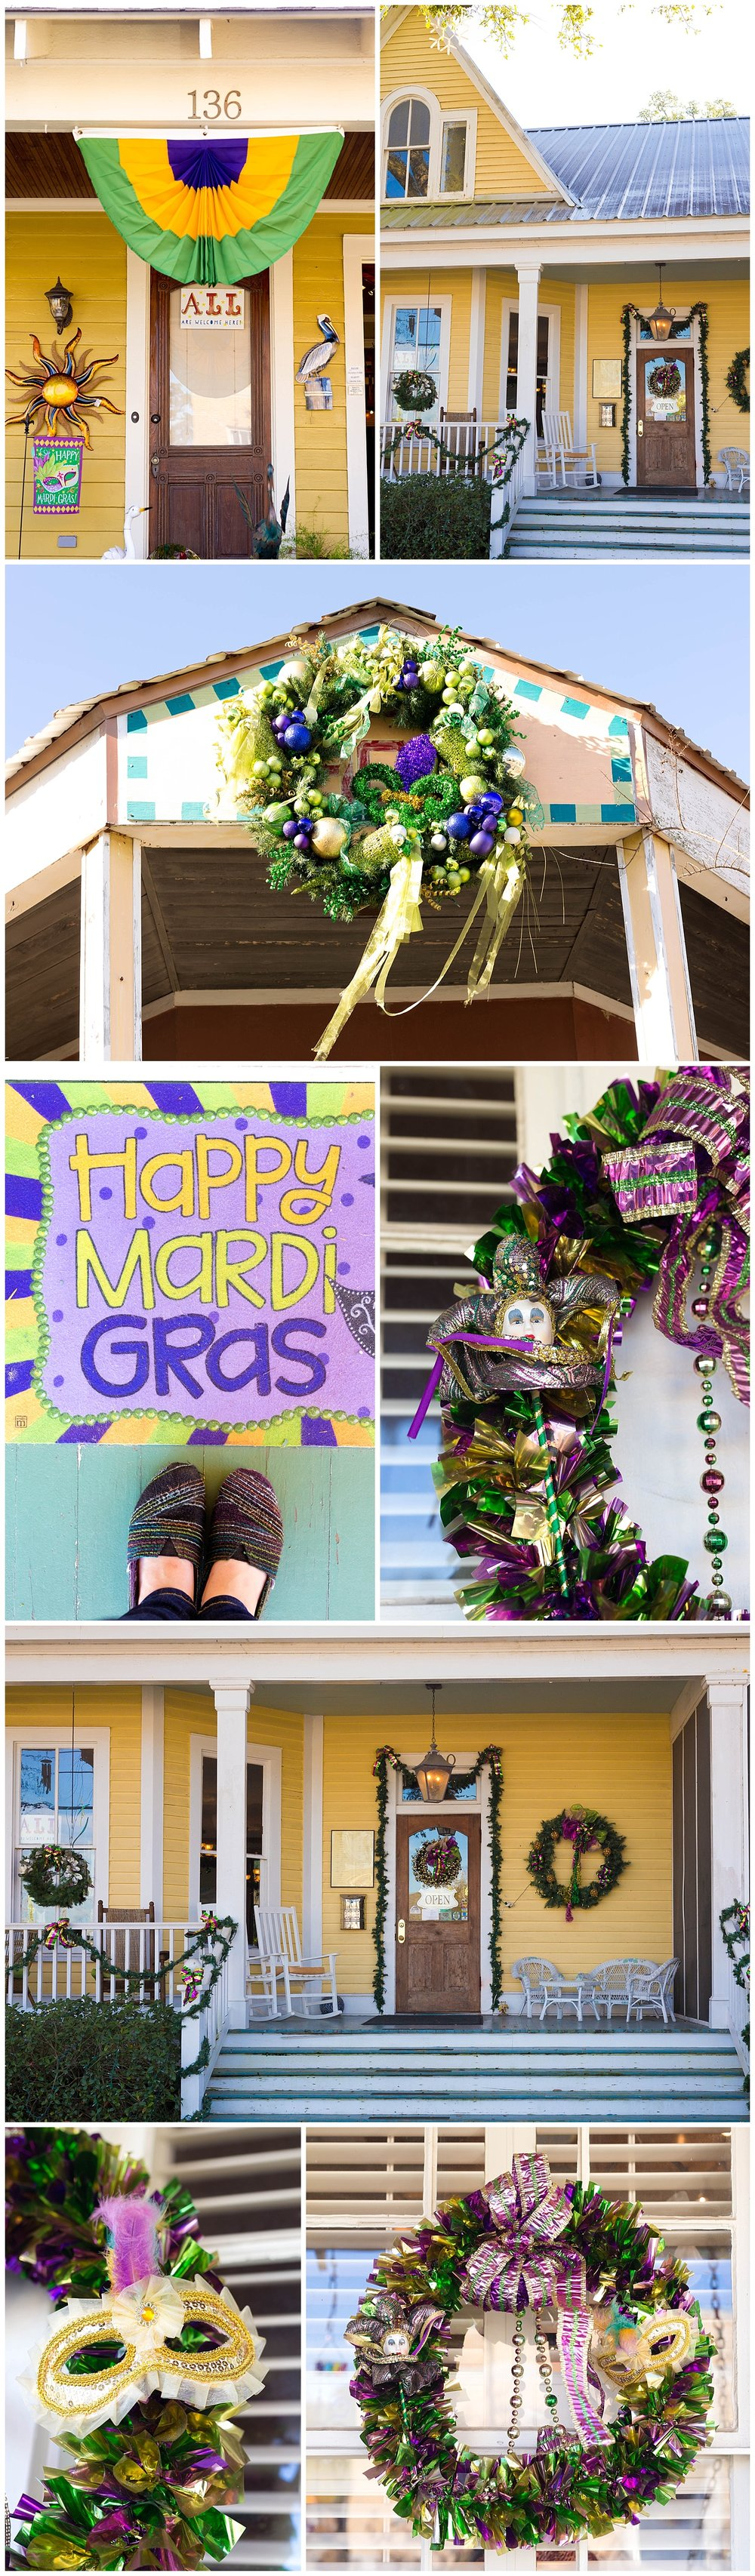 Mardi Gras decorations in Bay St. Louis, Mississippi